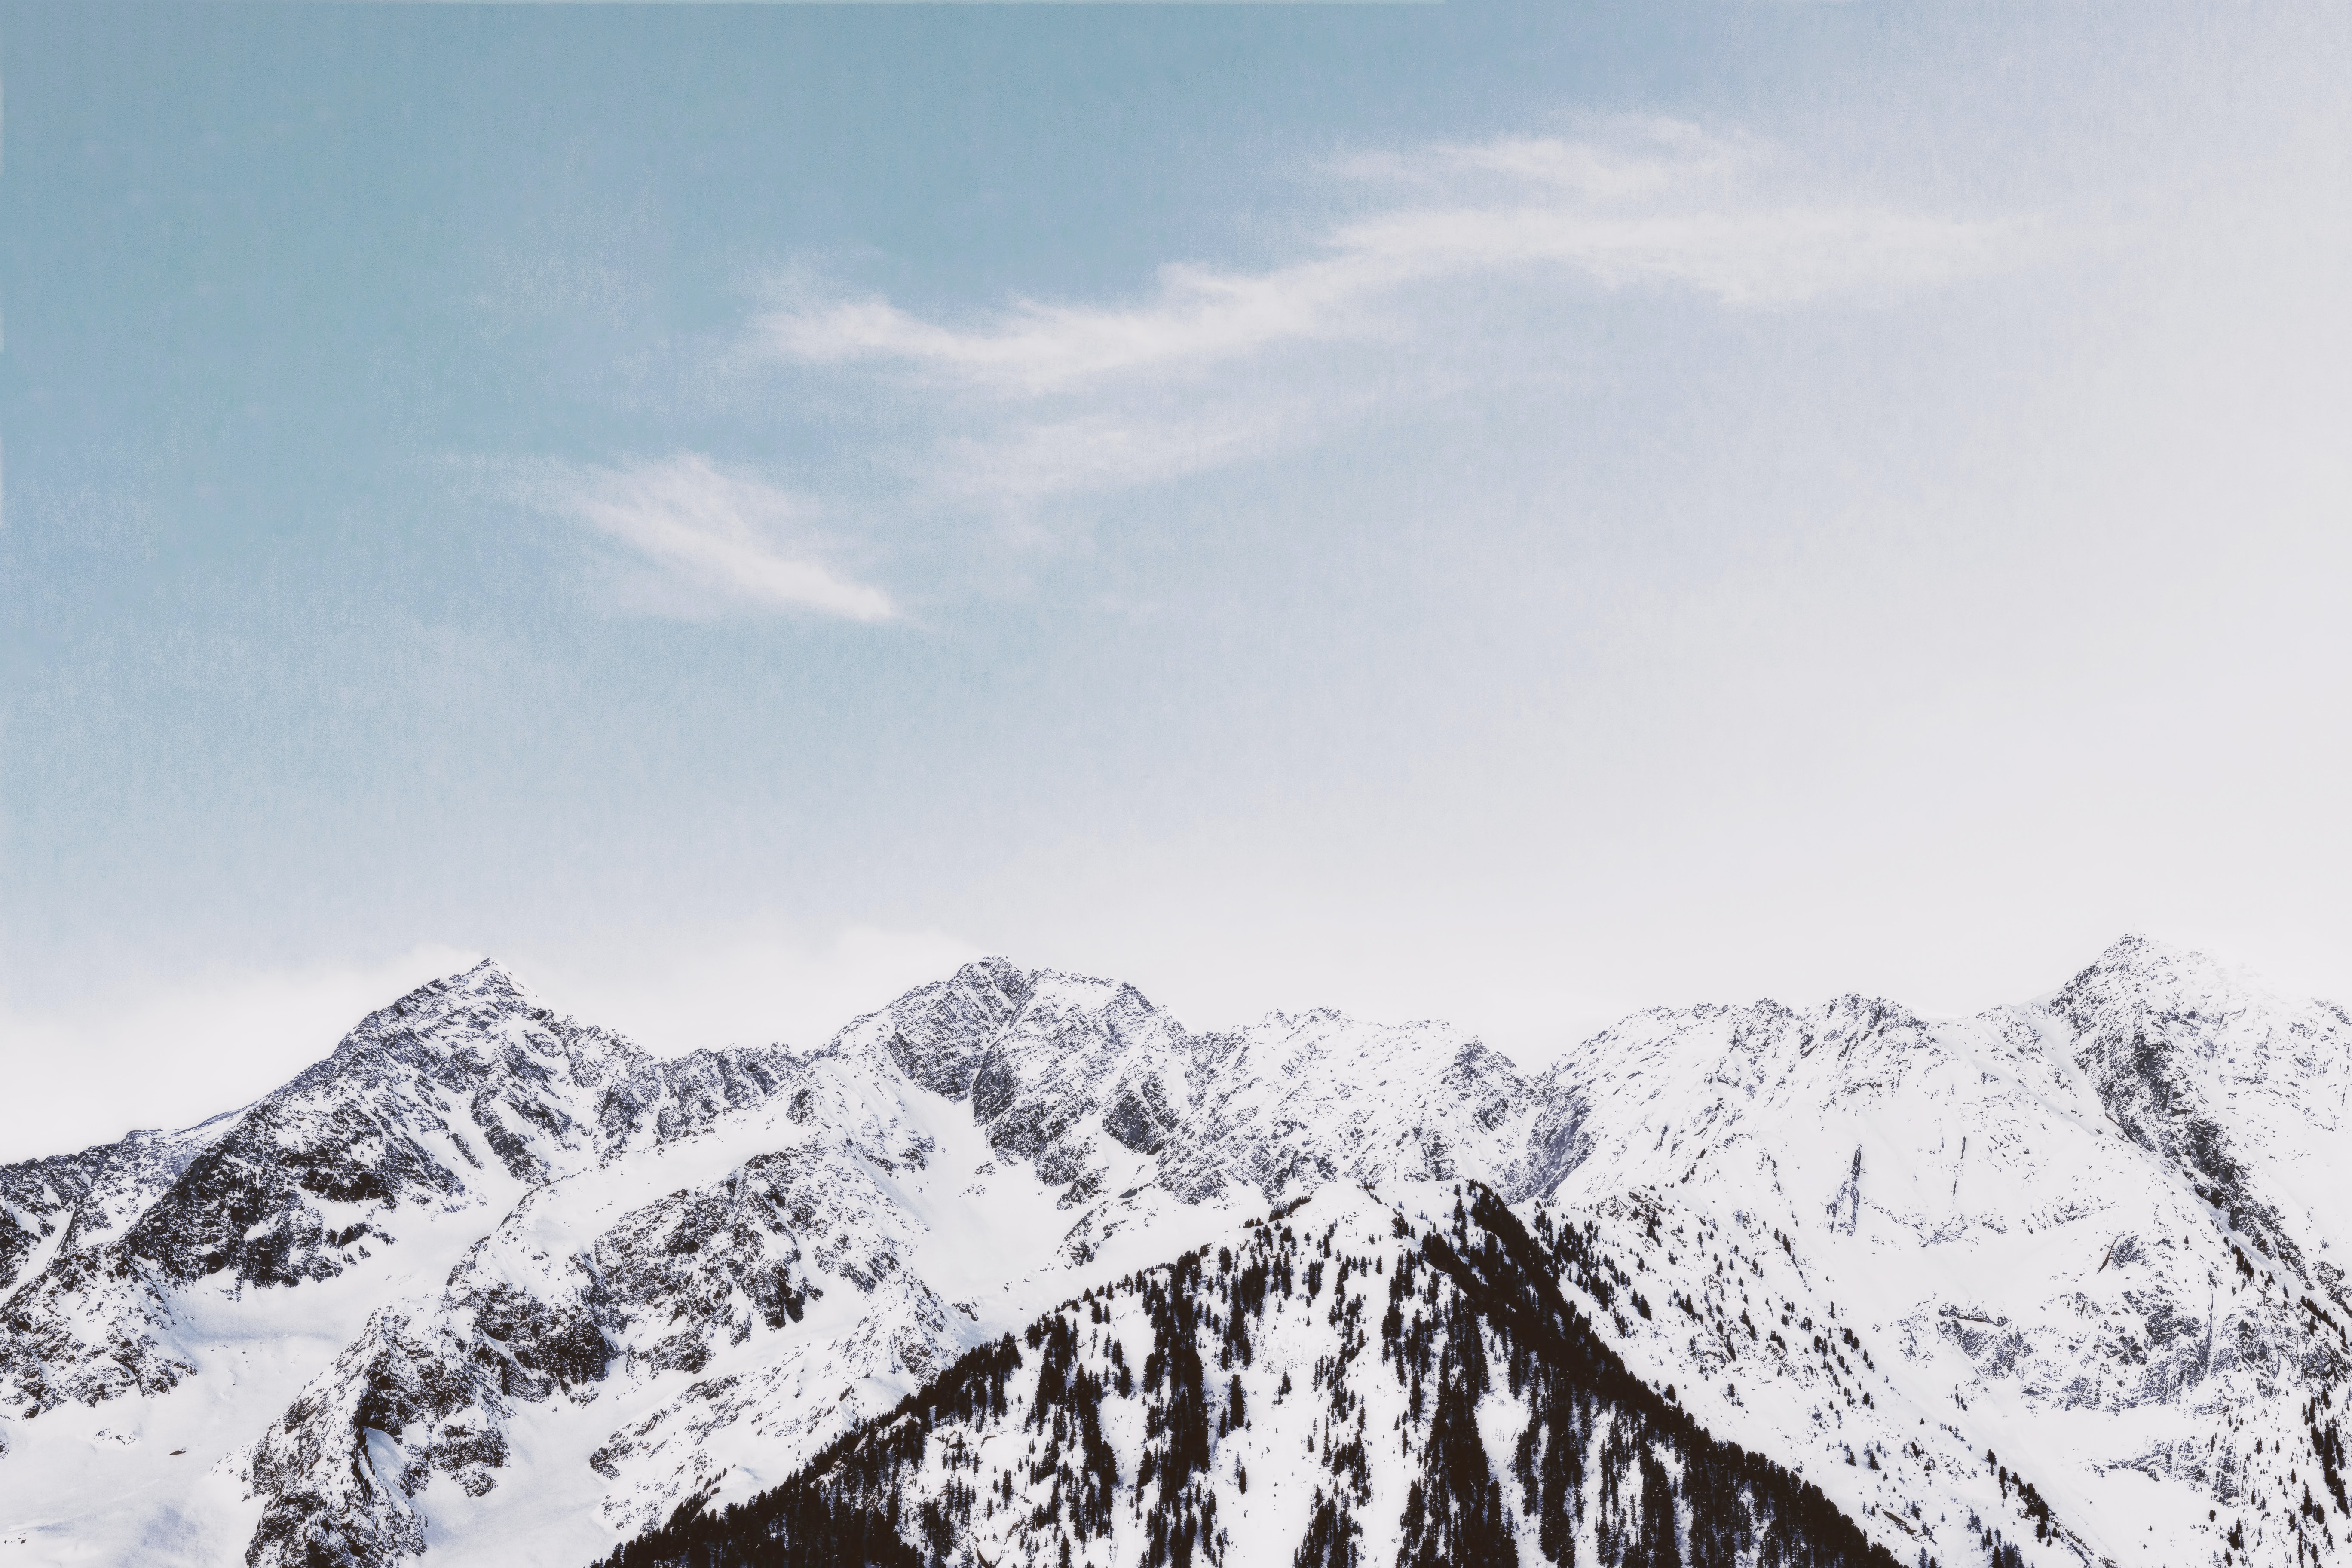 snow capped mountain ranges